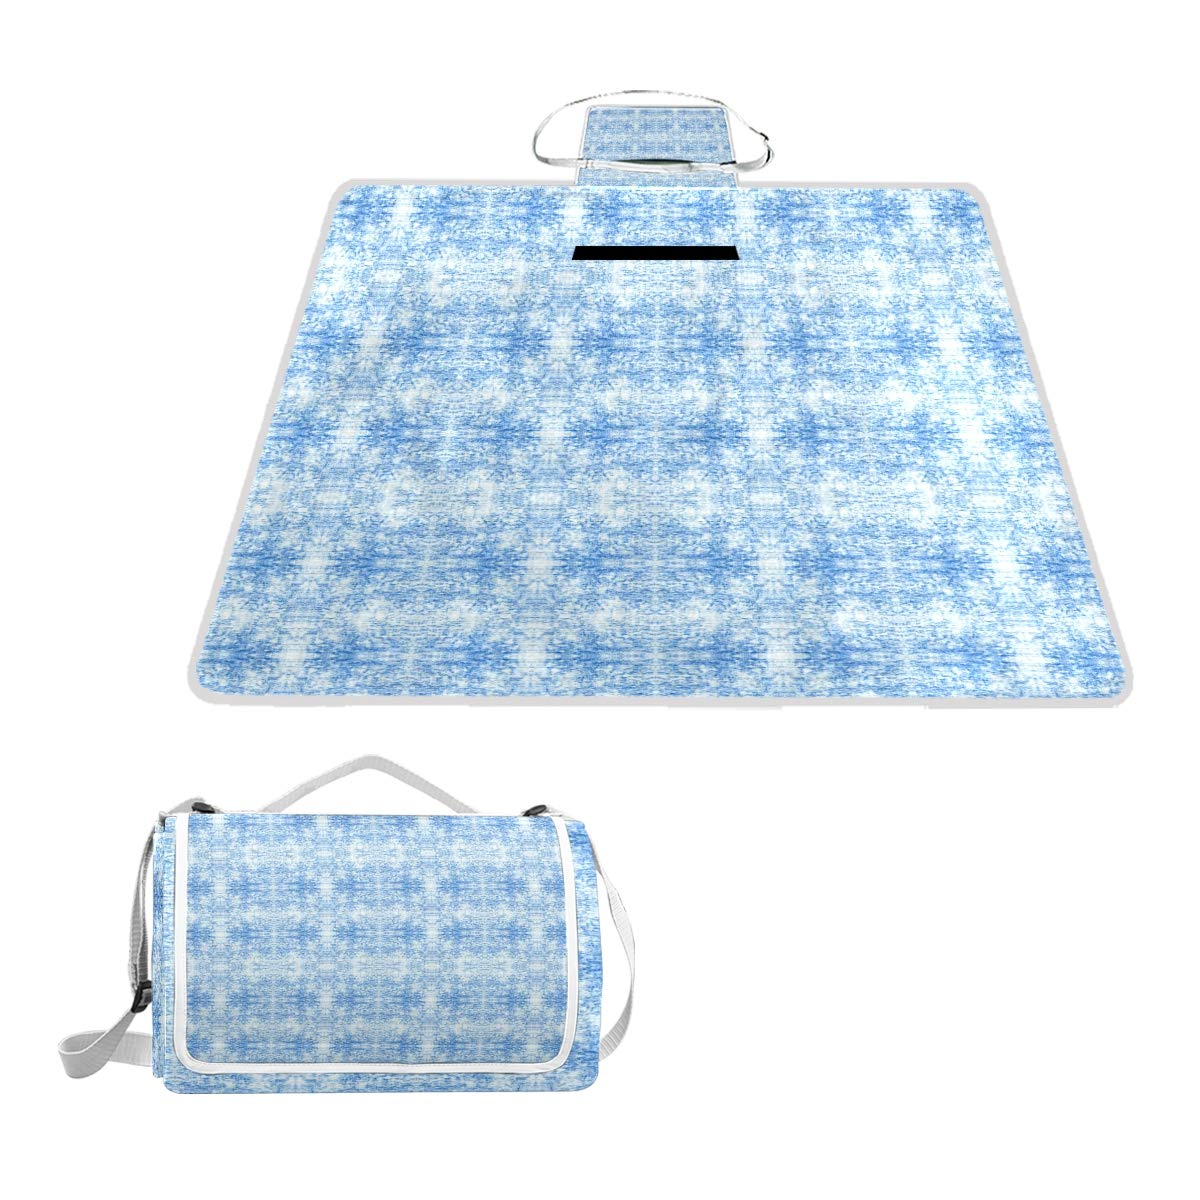 LOIGEIDQ Picnic mat Rchambray Light Waterproof Outdoor Picnic Blanket, Sandproof and Waterproof Picnic Blanket Tote for Camping Hiking Grass Travelling DualLayers